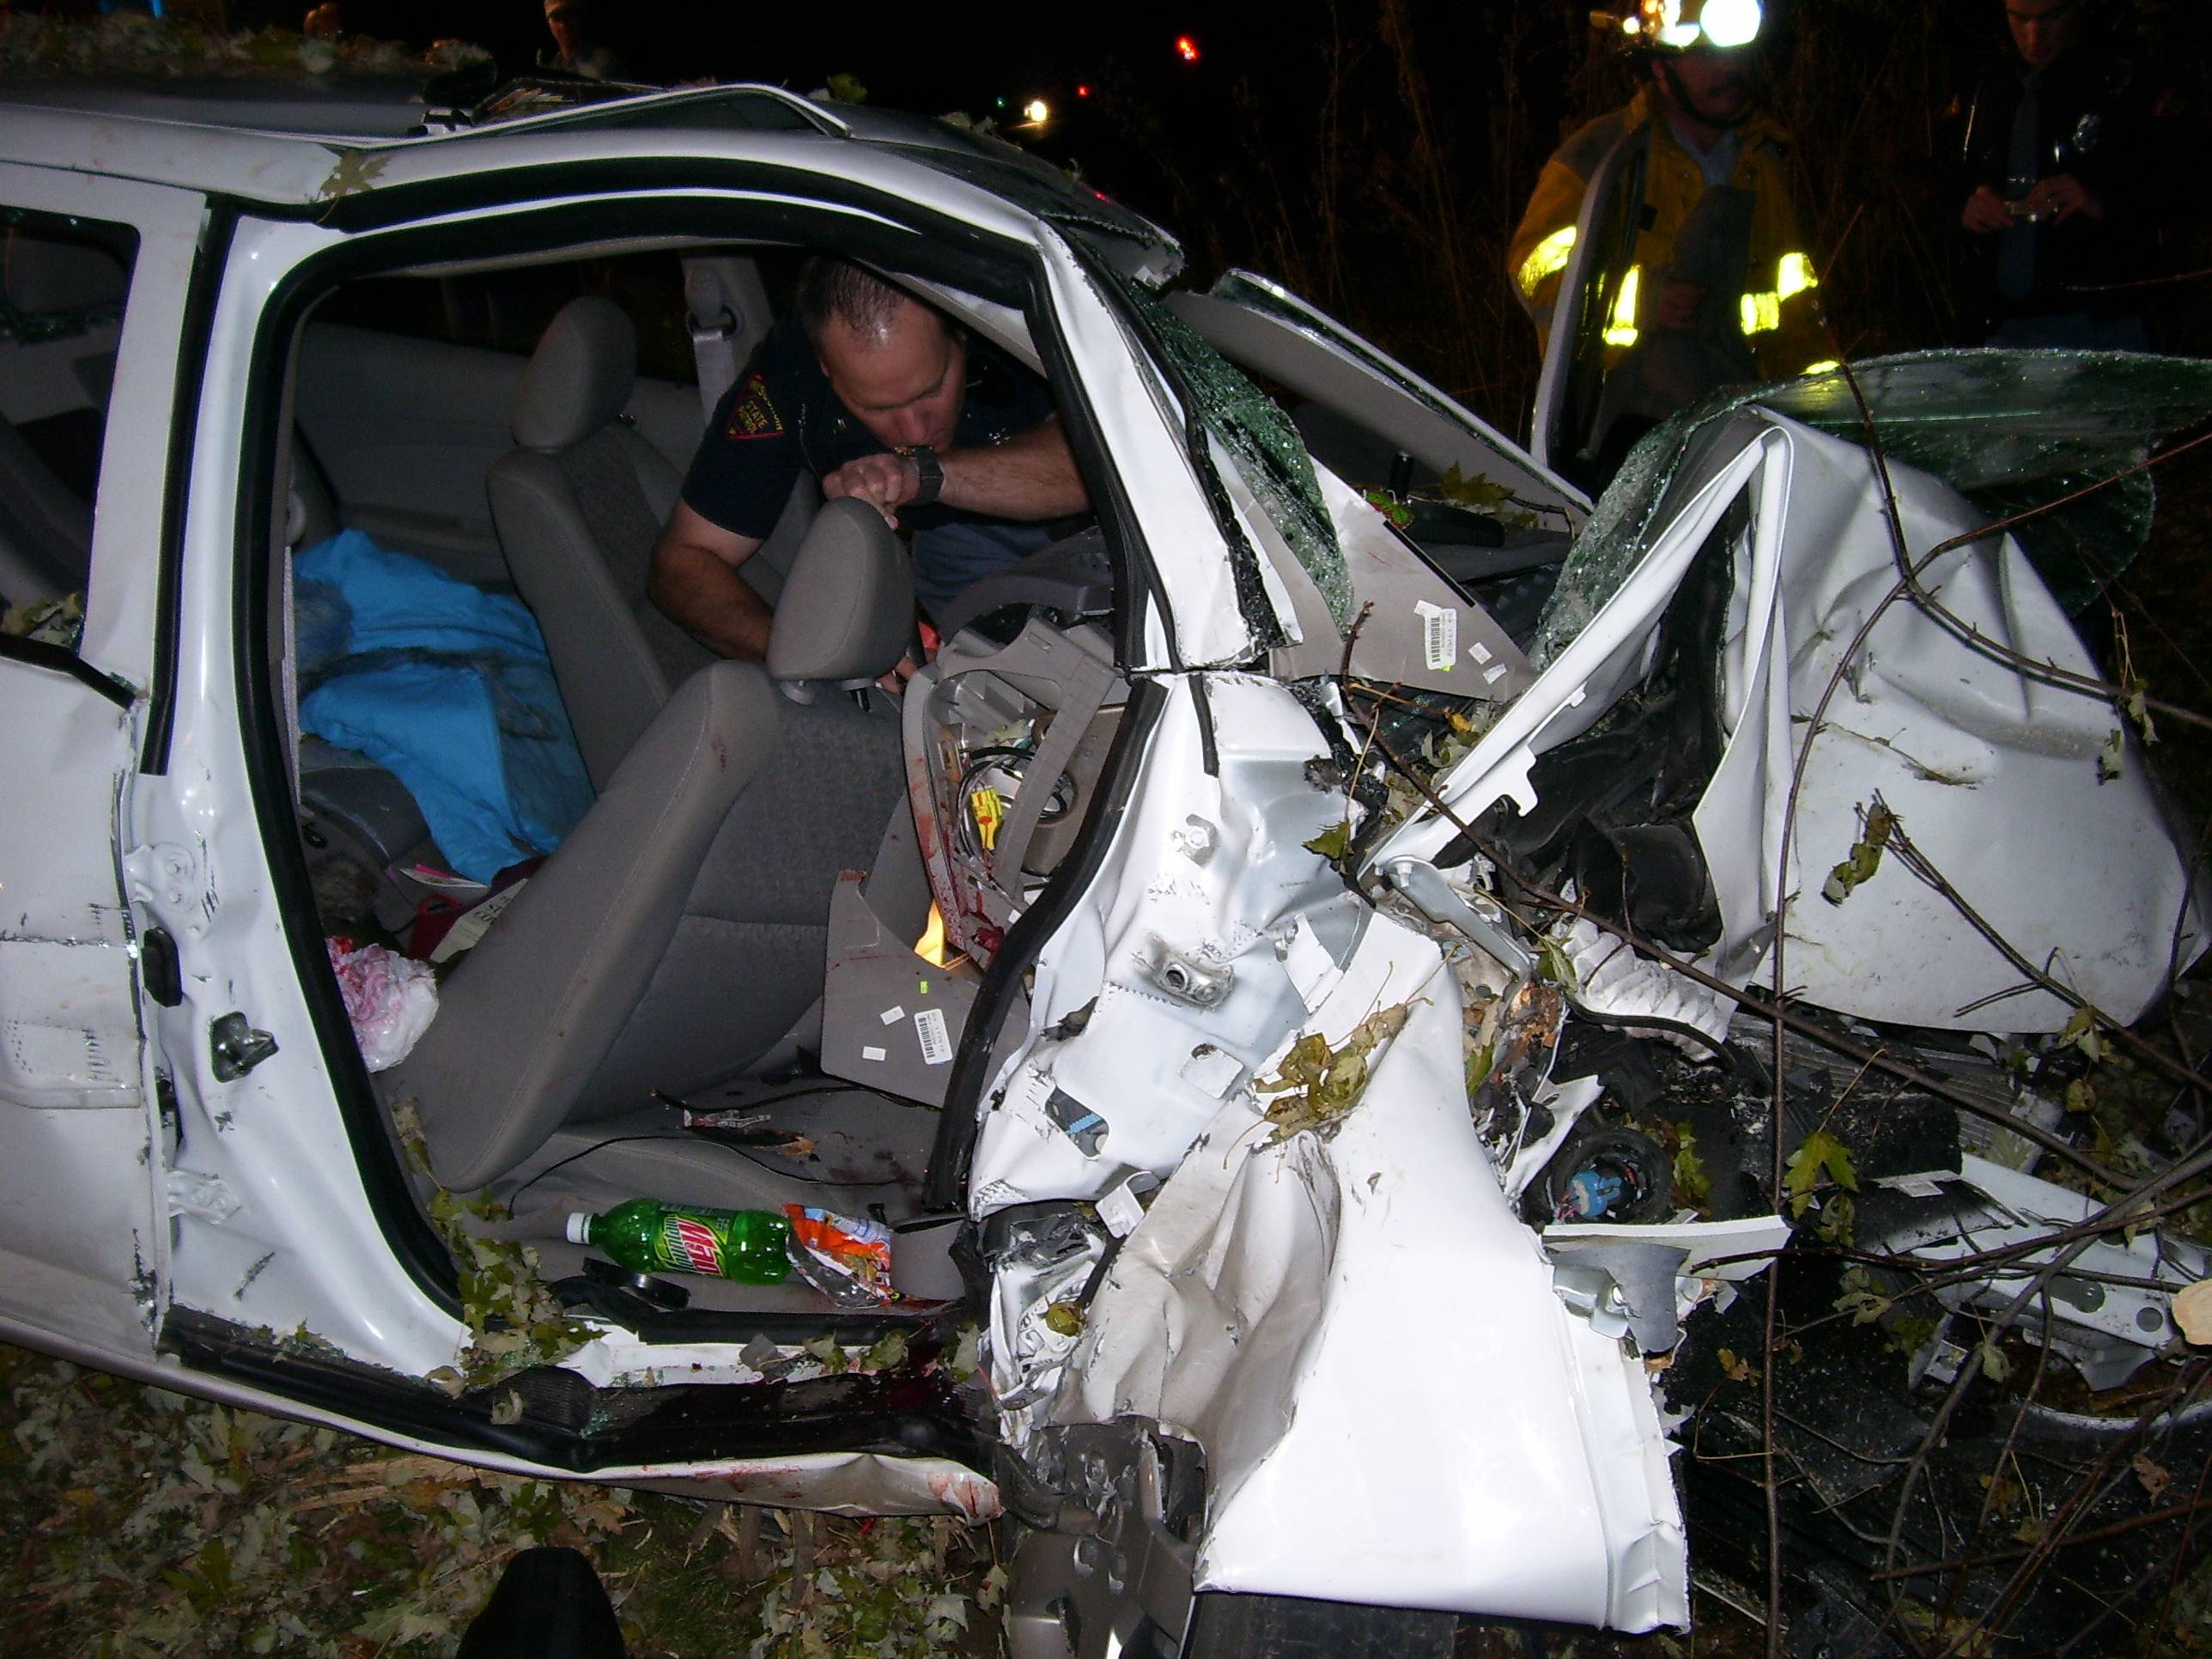 "In this Oct. 24, 2006 photo provided by the St. Croix County Sheriff's Office, police investigate the wreckage of a 2005 Chevrolet Cobalt that crashed in St. Croix County, killing two and injuring one. The vehicle's ignition was found in the ""accessory"" position and the air bags didn't deploy."